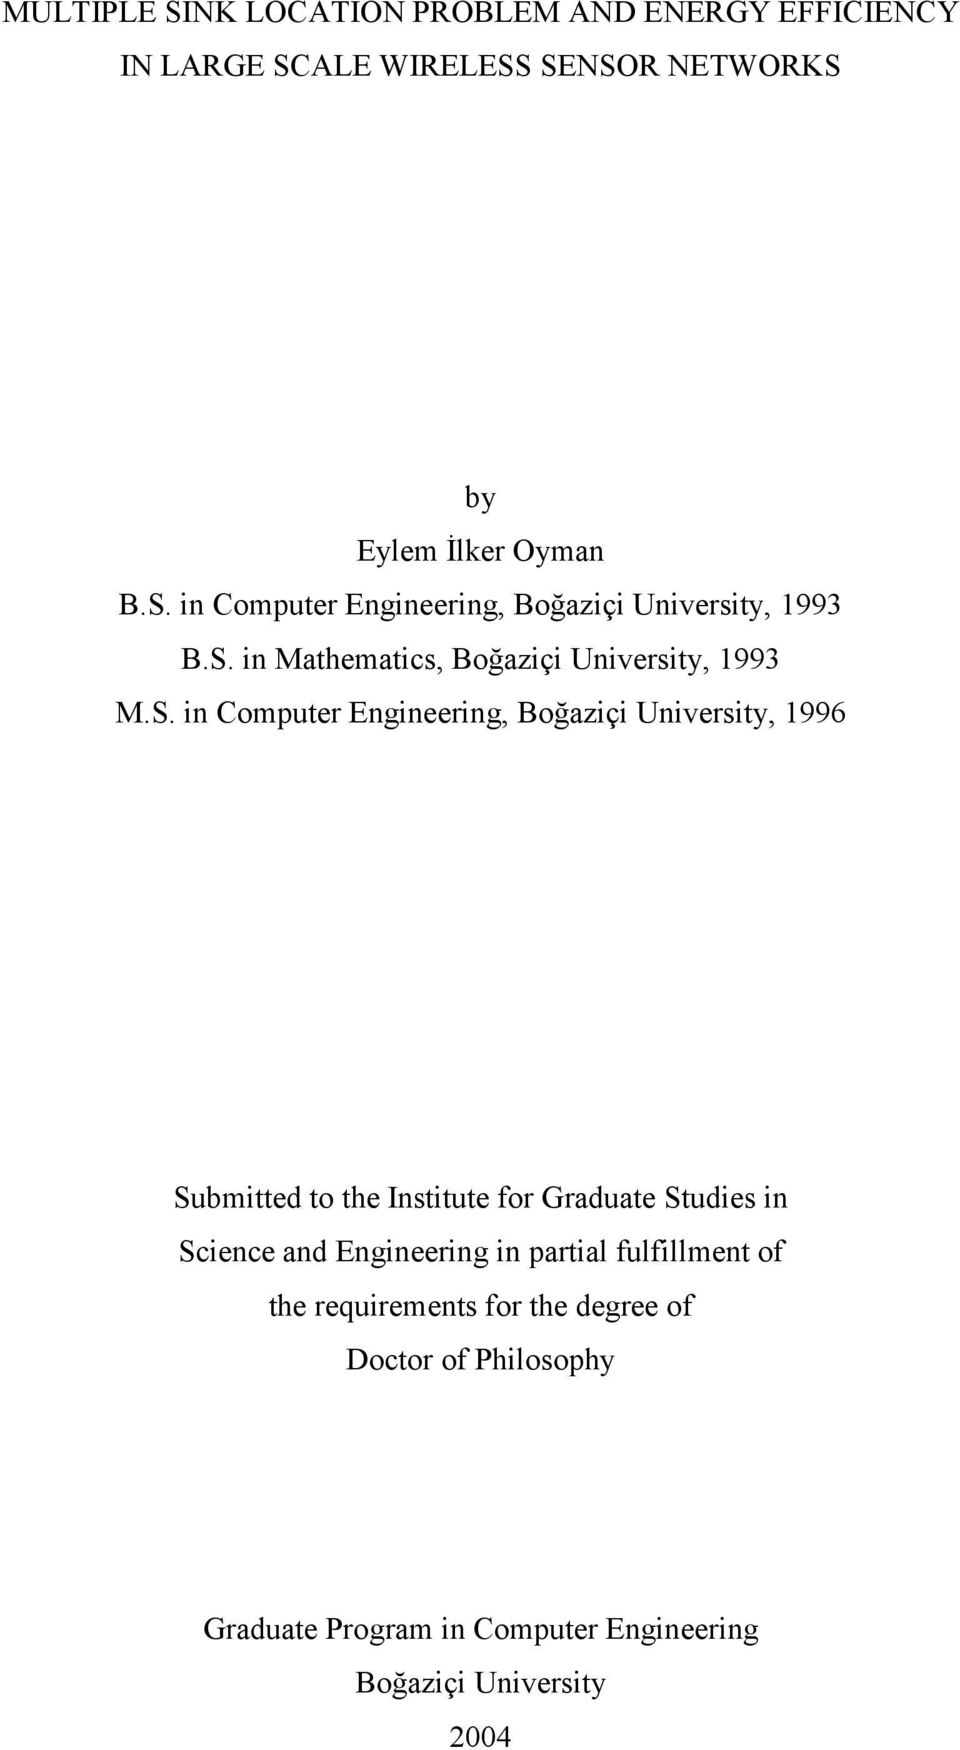 Intitute for Graduate Studie in Science and Engineering in partial fulfillment of the requirement for the degree of